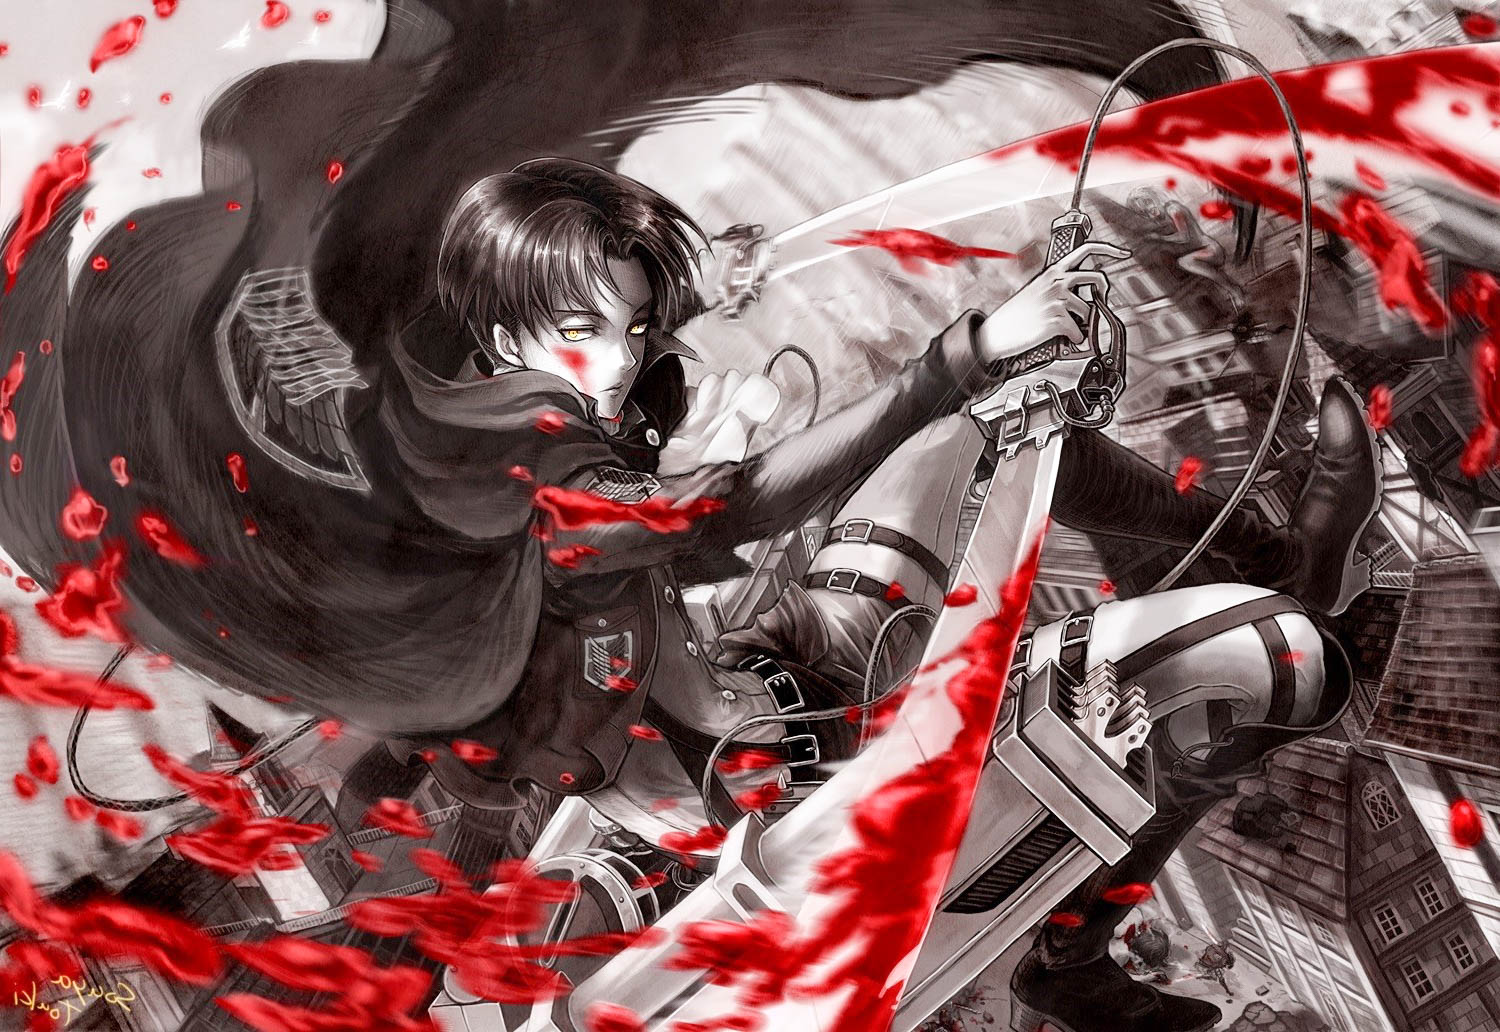 Wonderful Wallpaper High Quality Attack On Titan - Attack-On-Titan-6  Perfect Image Reference_23826.jpg